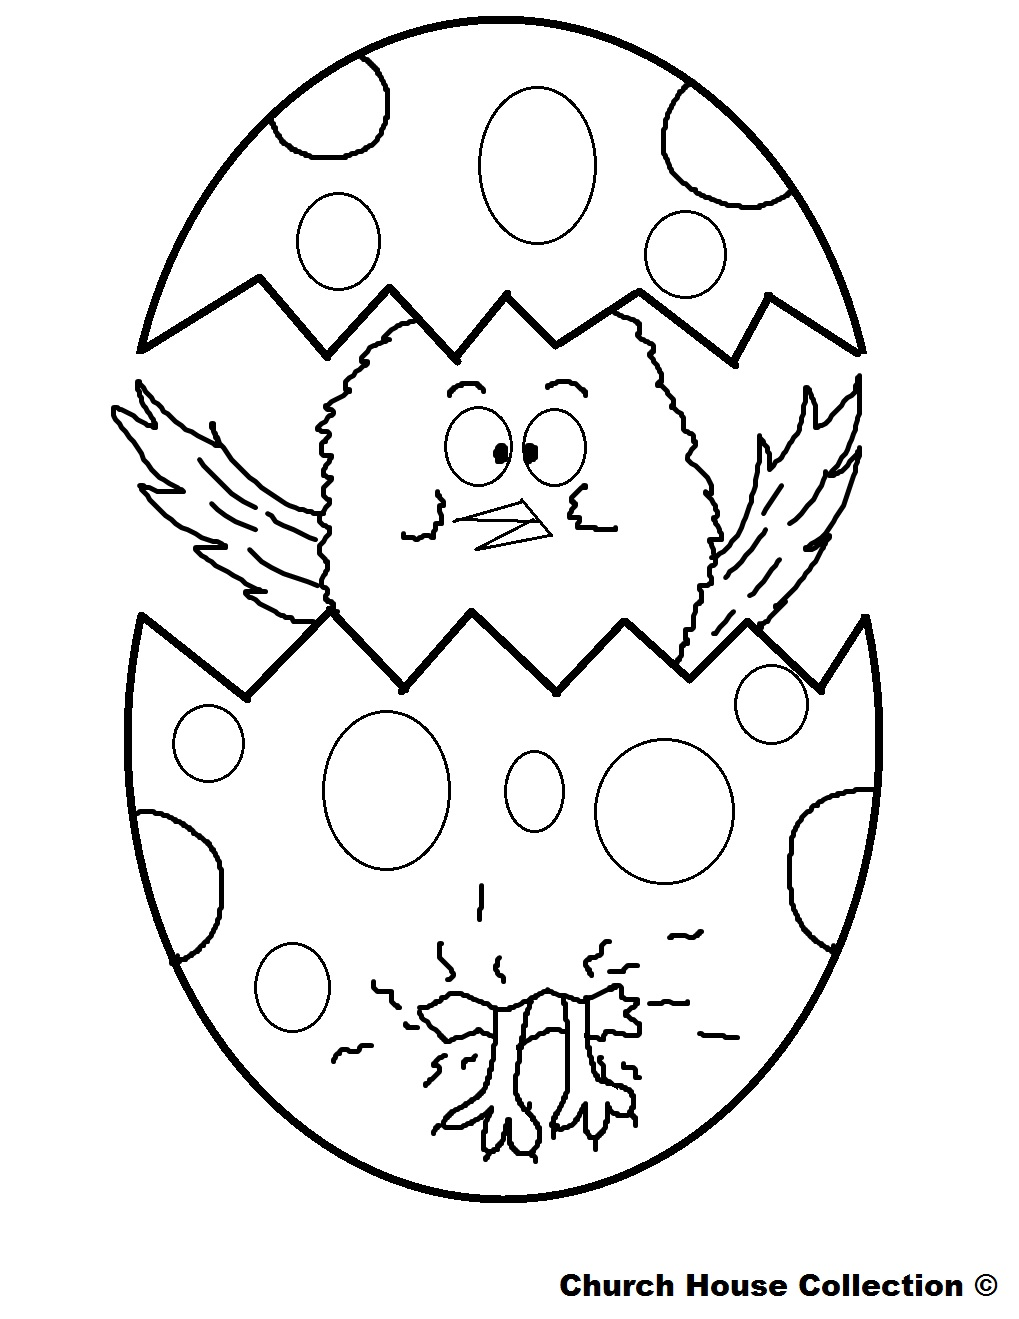 Free Easter Egg Coloring Pages Printable At Getdrawings Com Free